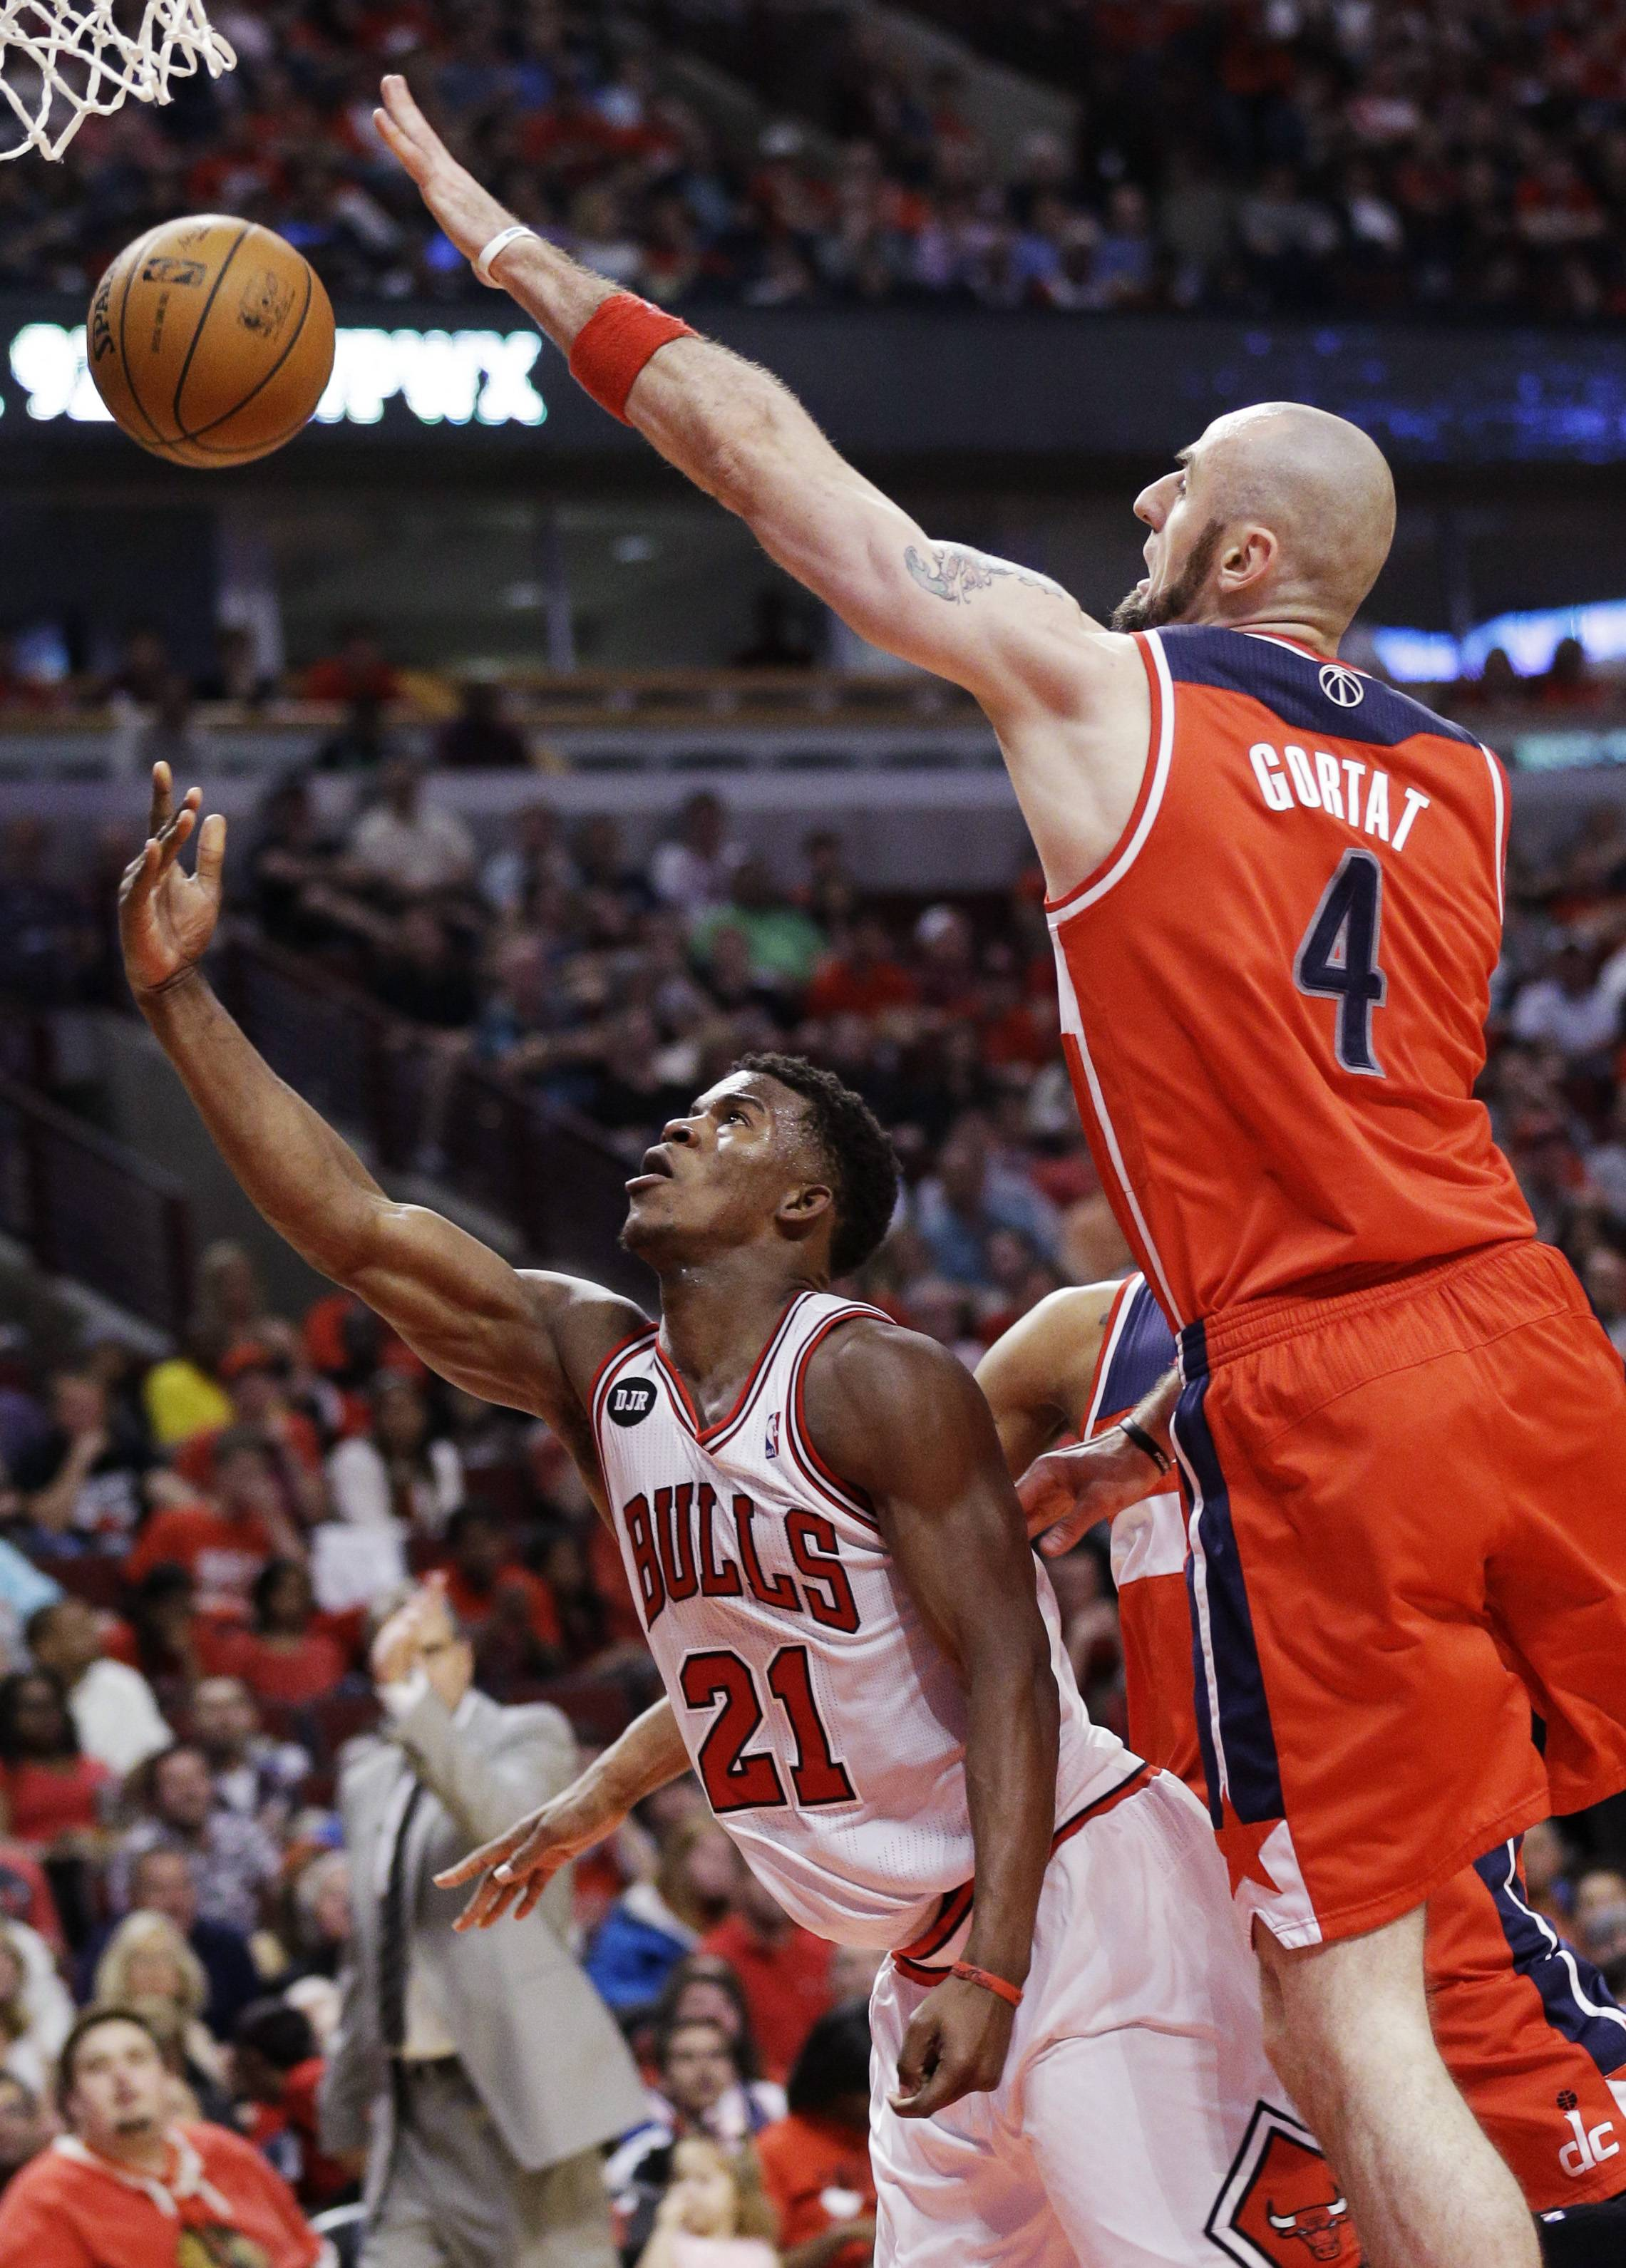 Bulls guard Jimmy Butler shoots against Wizards center Marcin Gortat during the second half in Game 1 of an opening-round playoff series at the United Center.